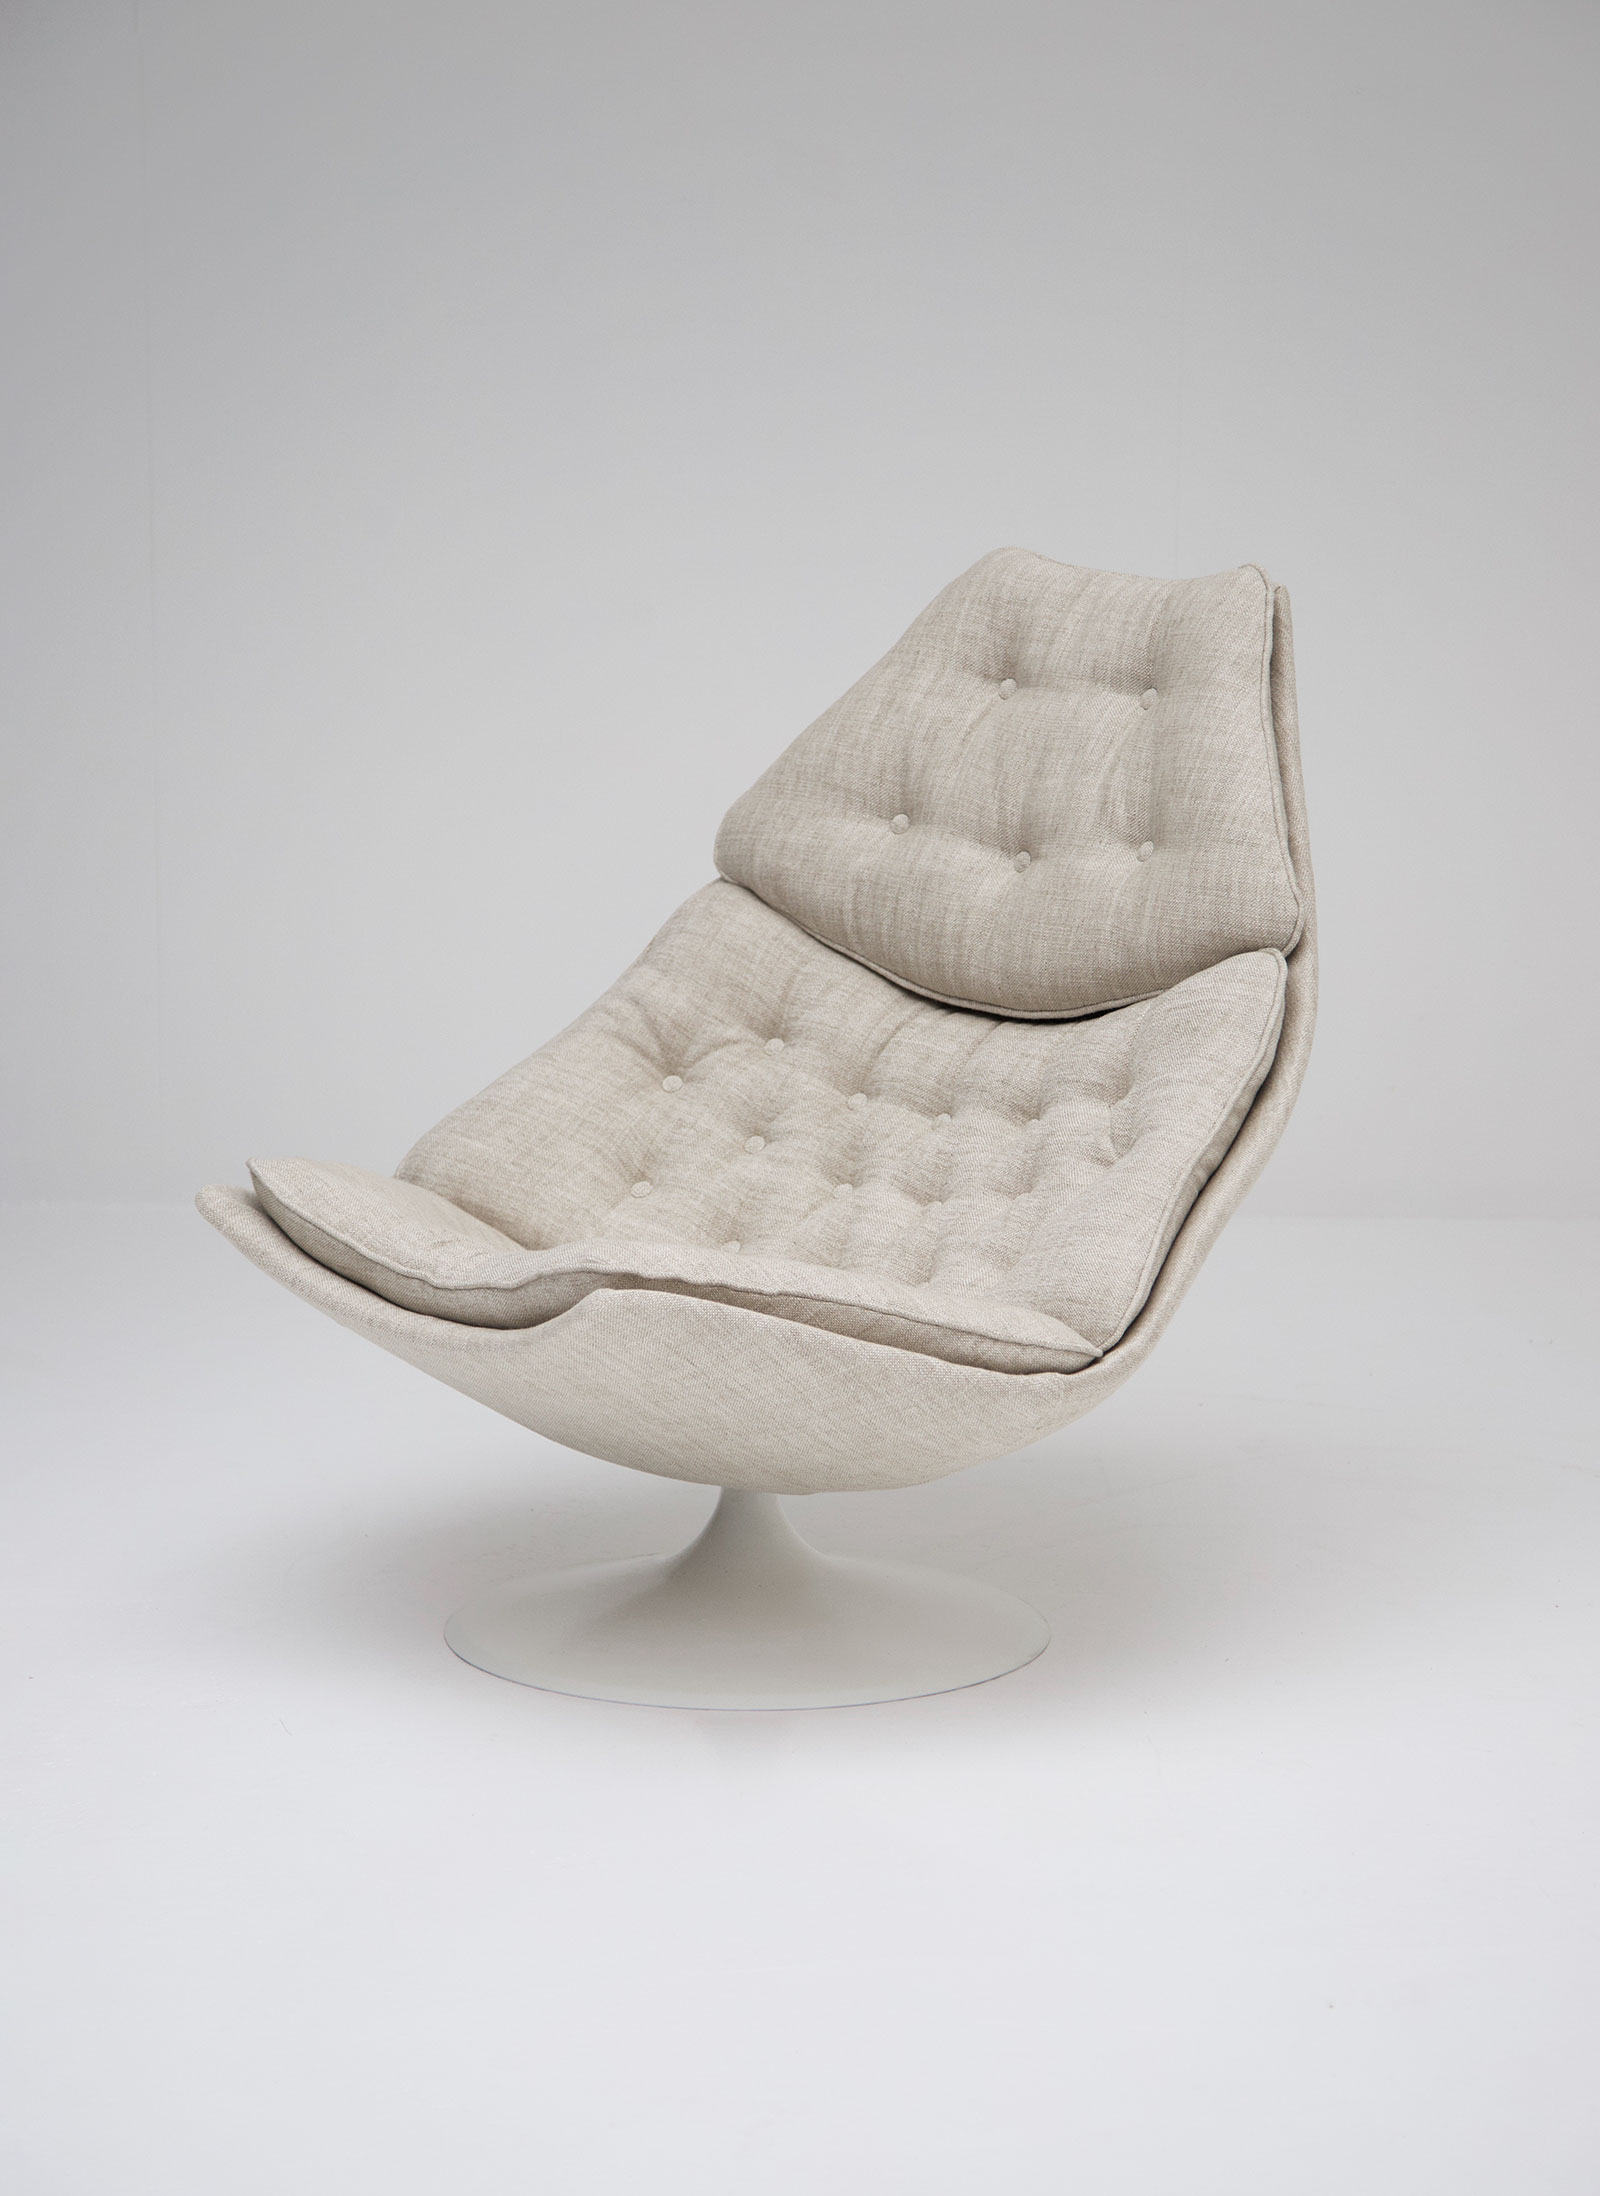 artifort f588 fauteuil by geoffrey harcourtimage 1